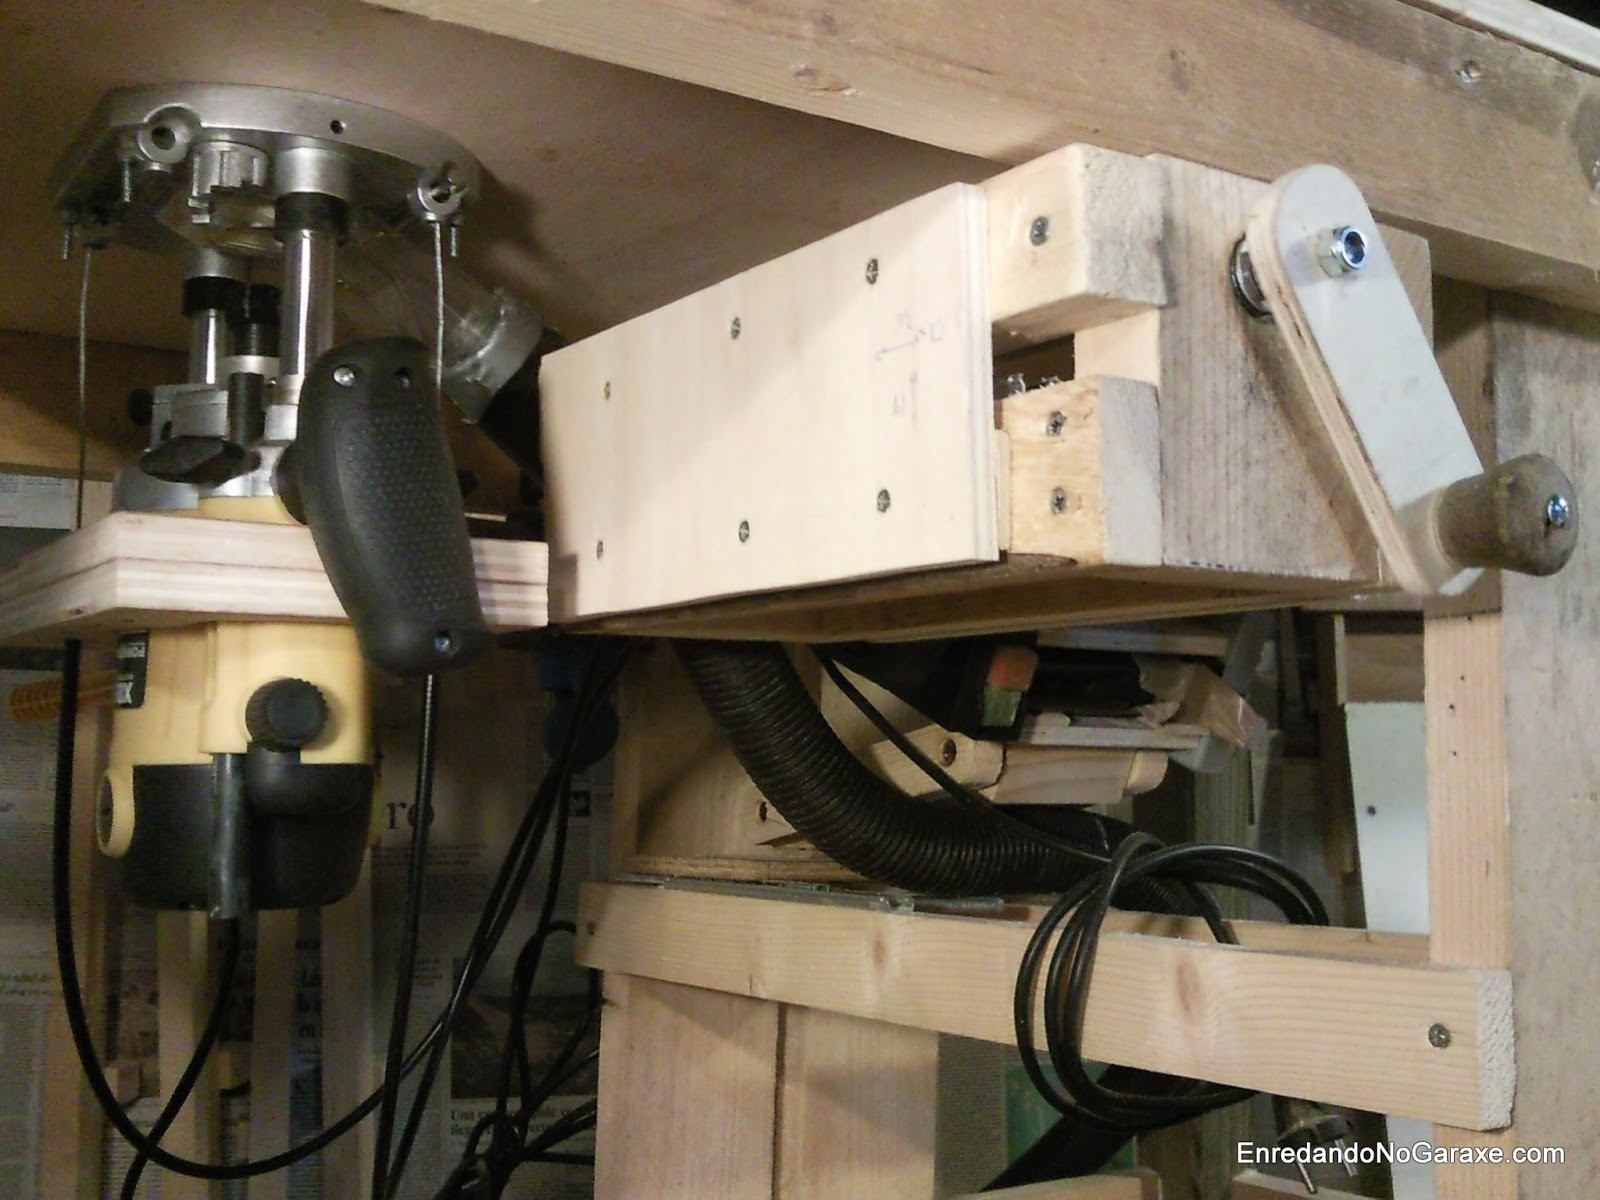 Router lift attached to the router table, rummageinthegarage